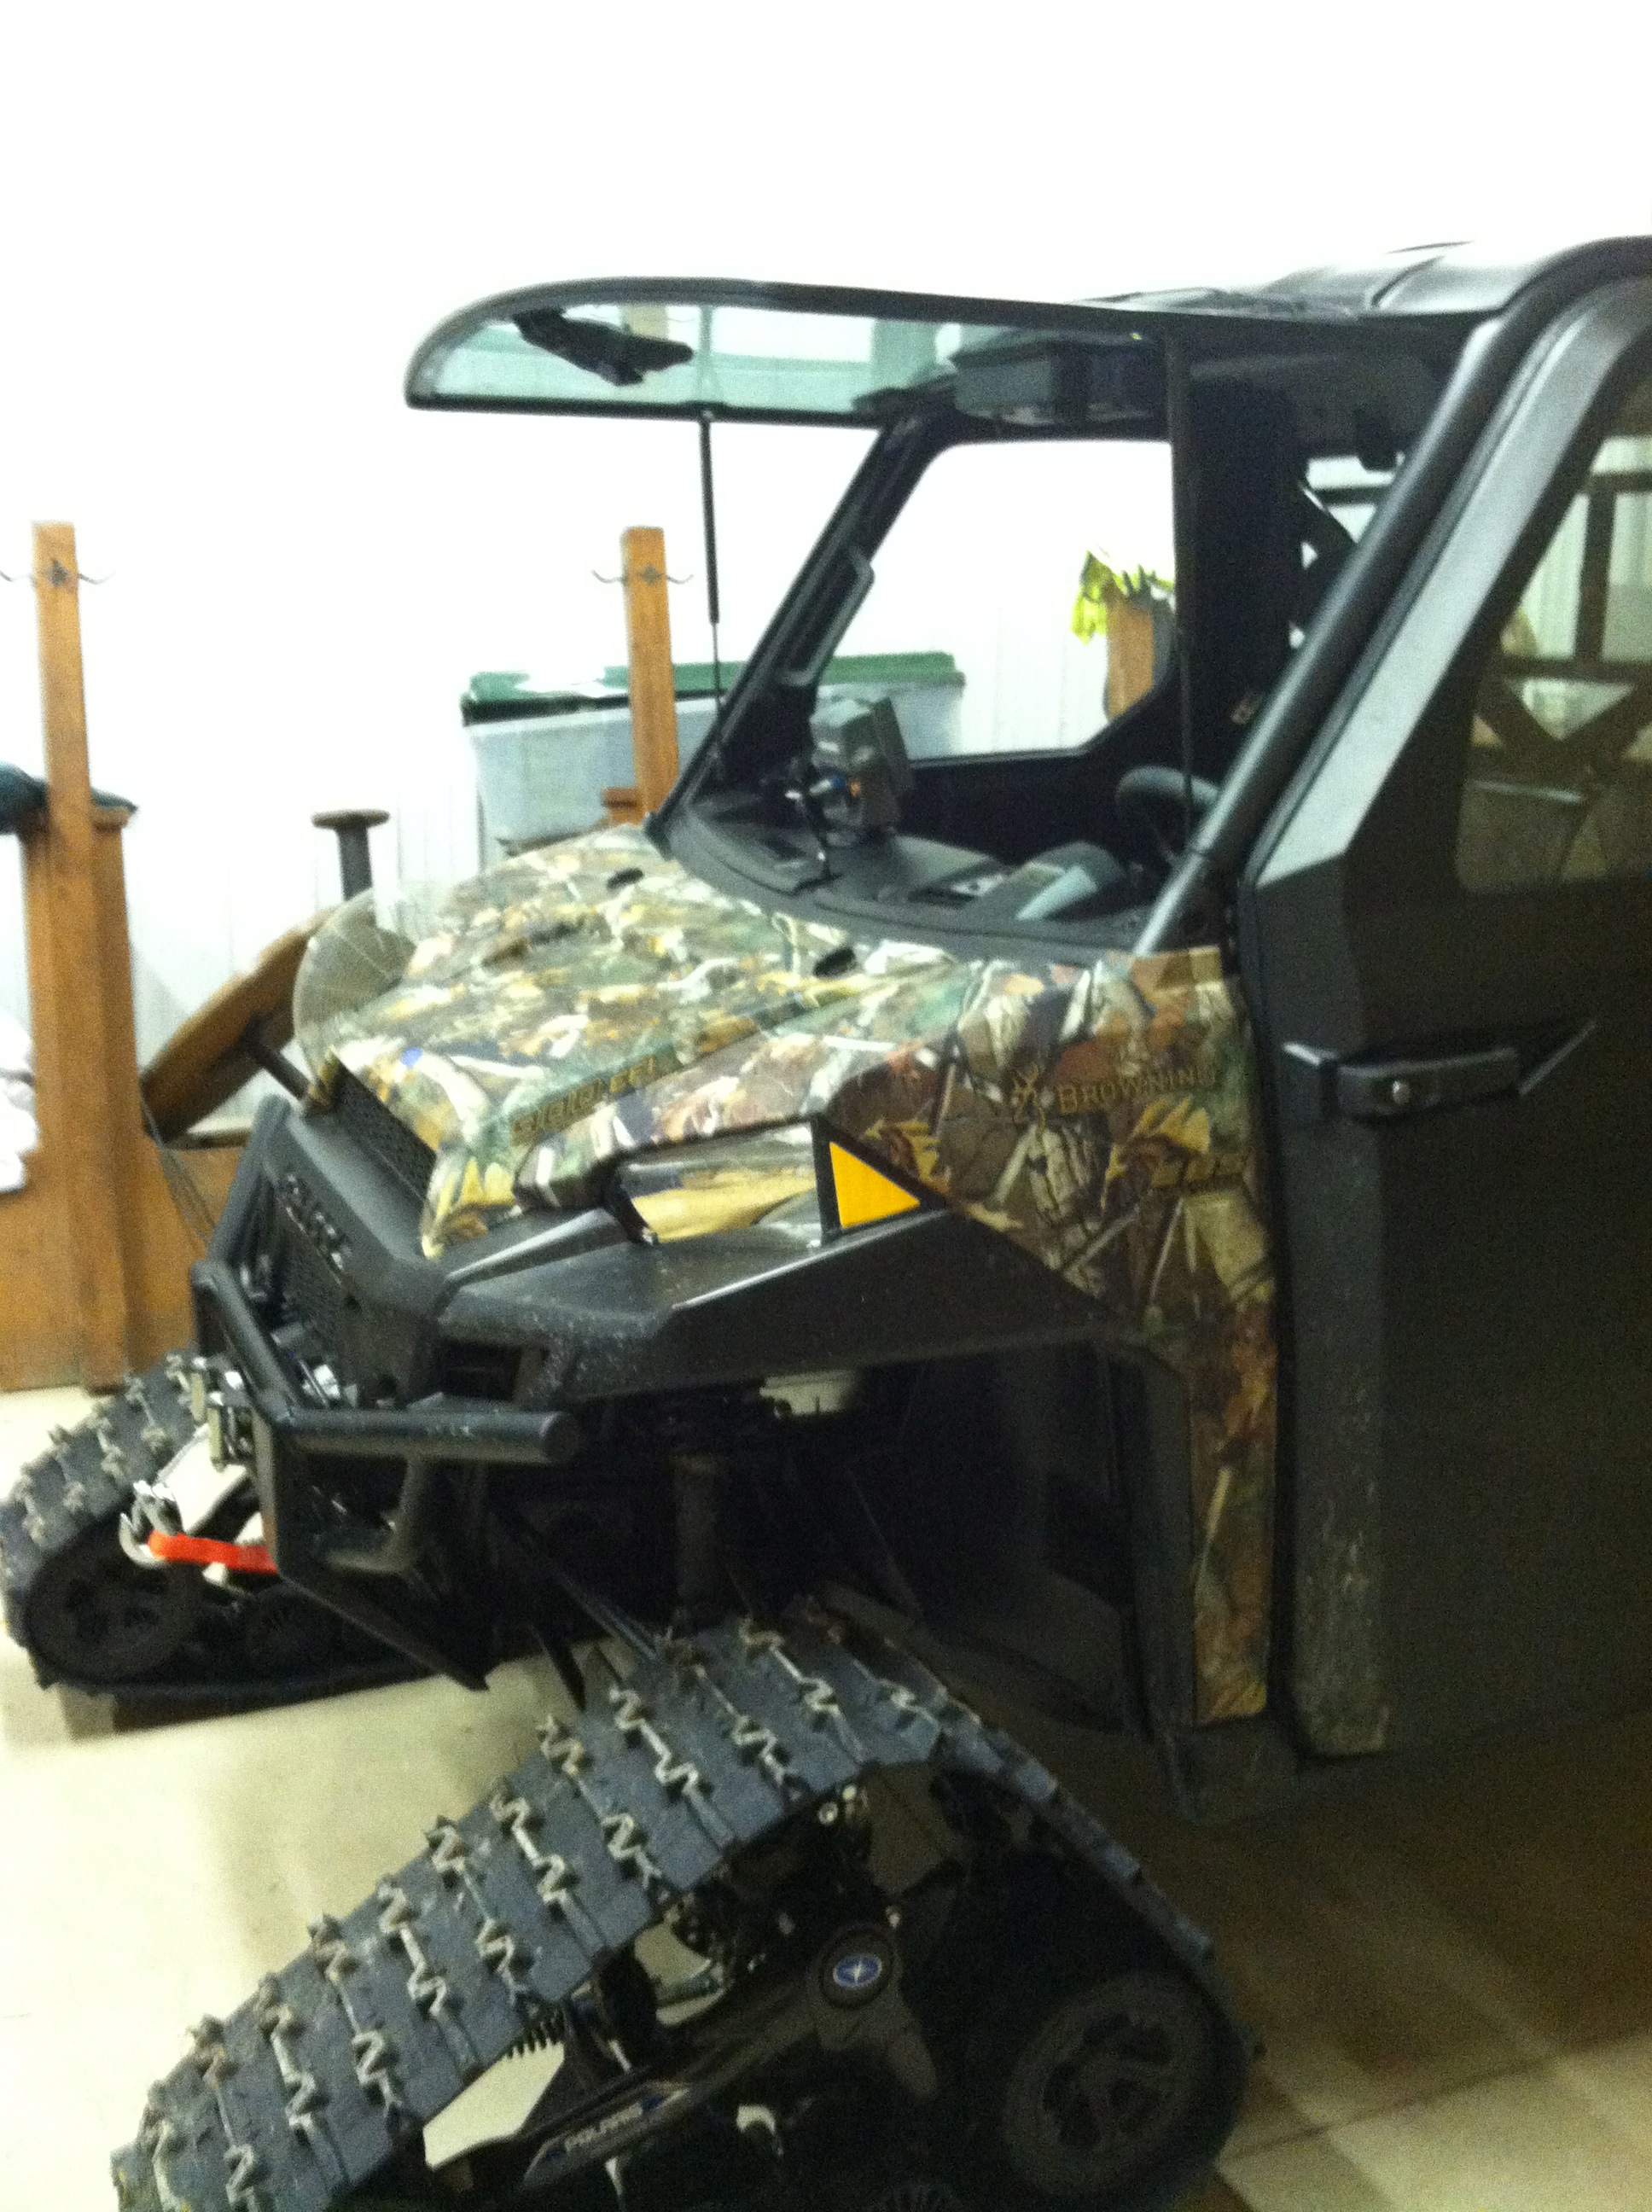 2014 Polaris Ranger And Trailer